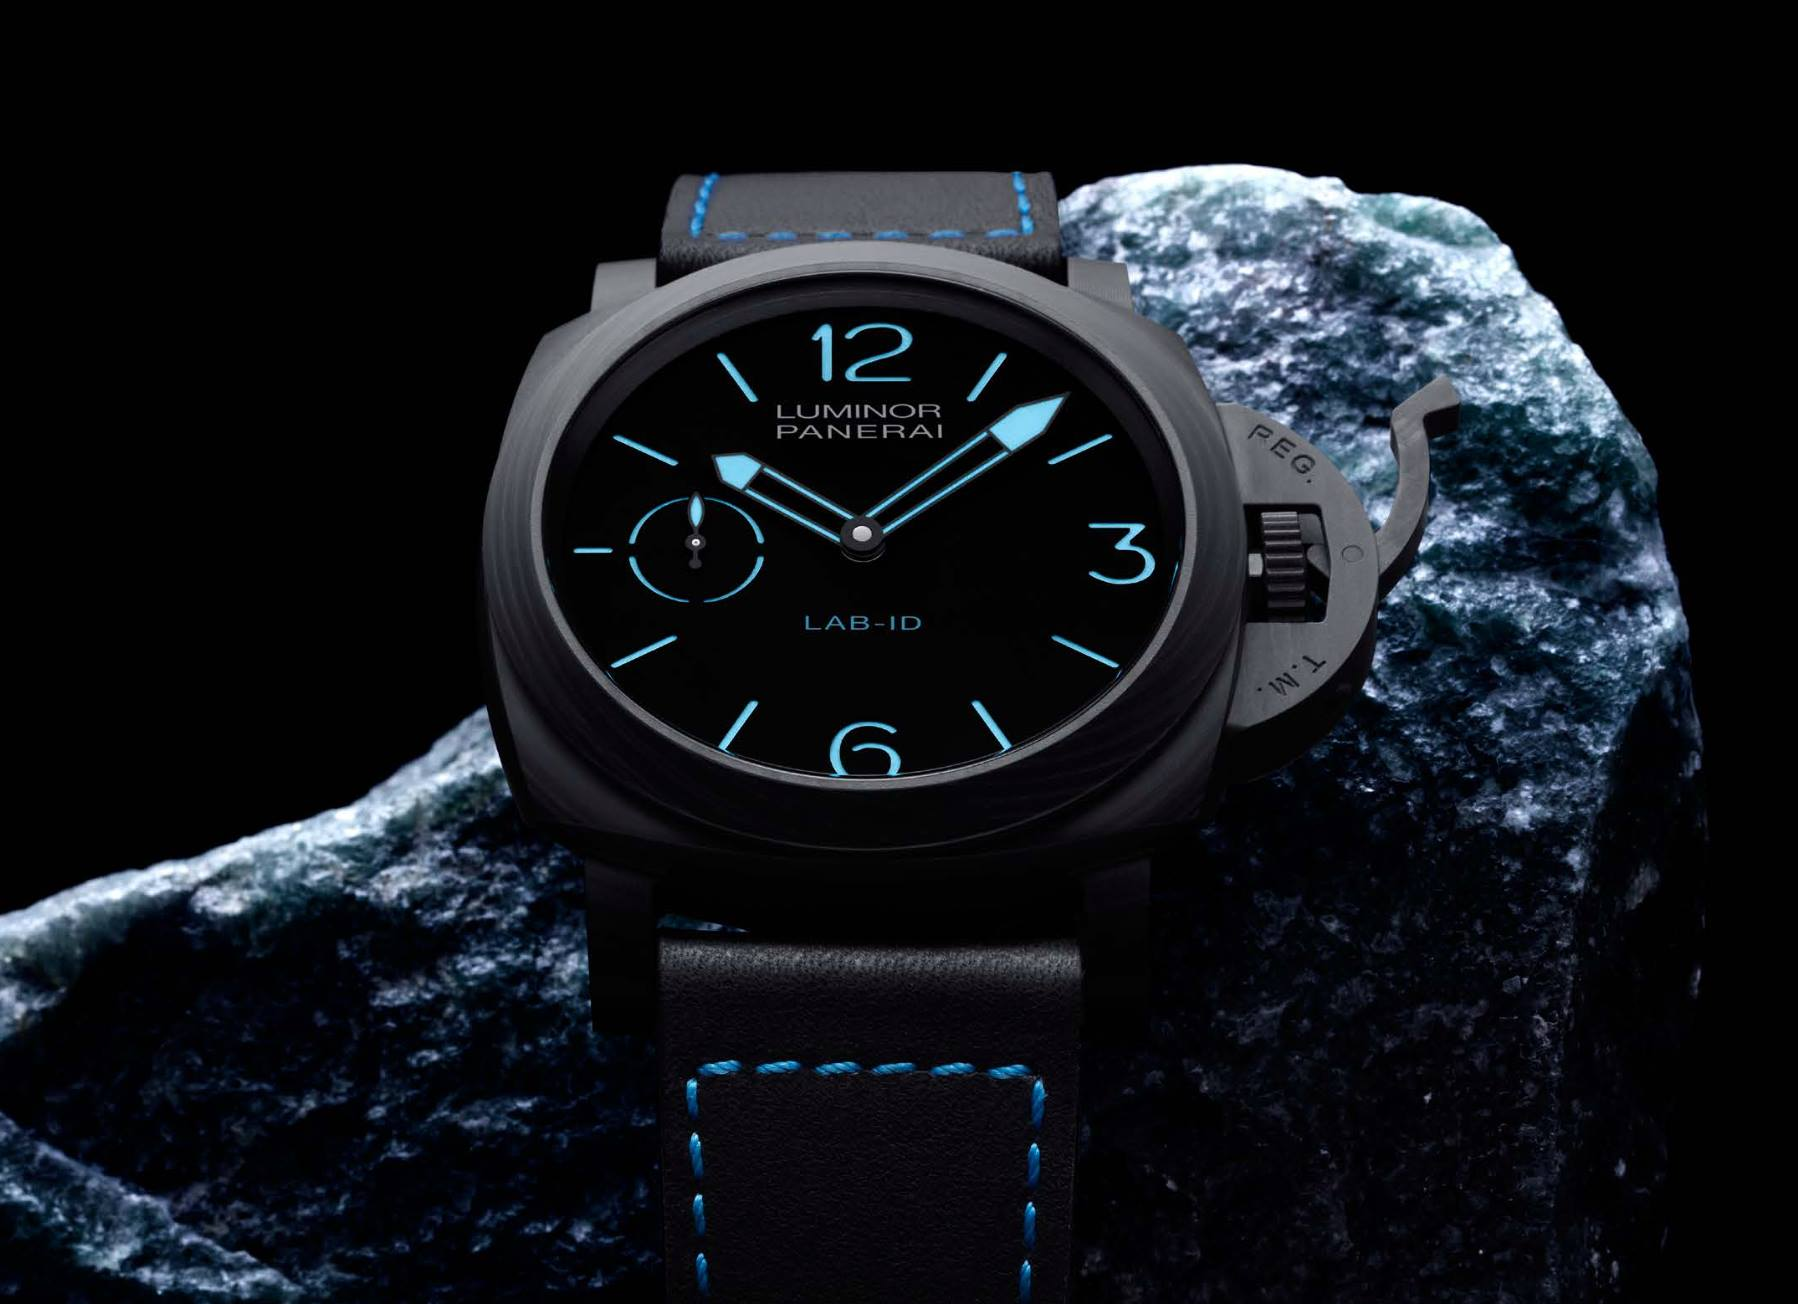 panerai-sihh-2017-luminor-lab-id-6